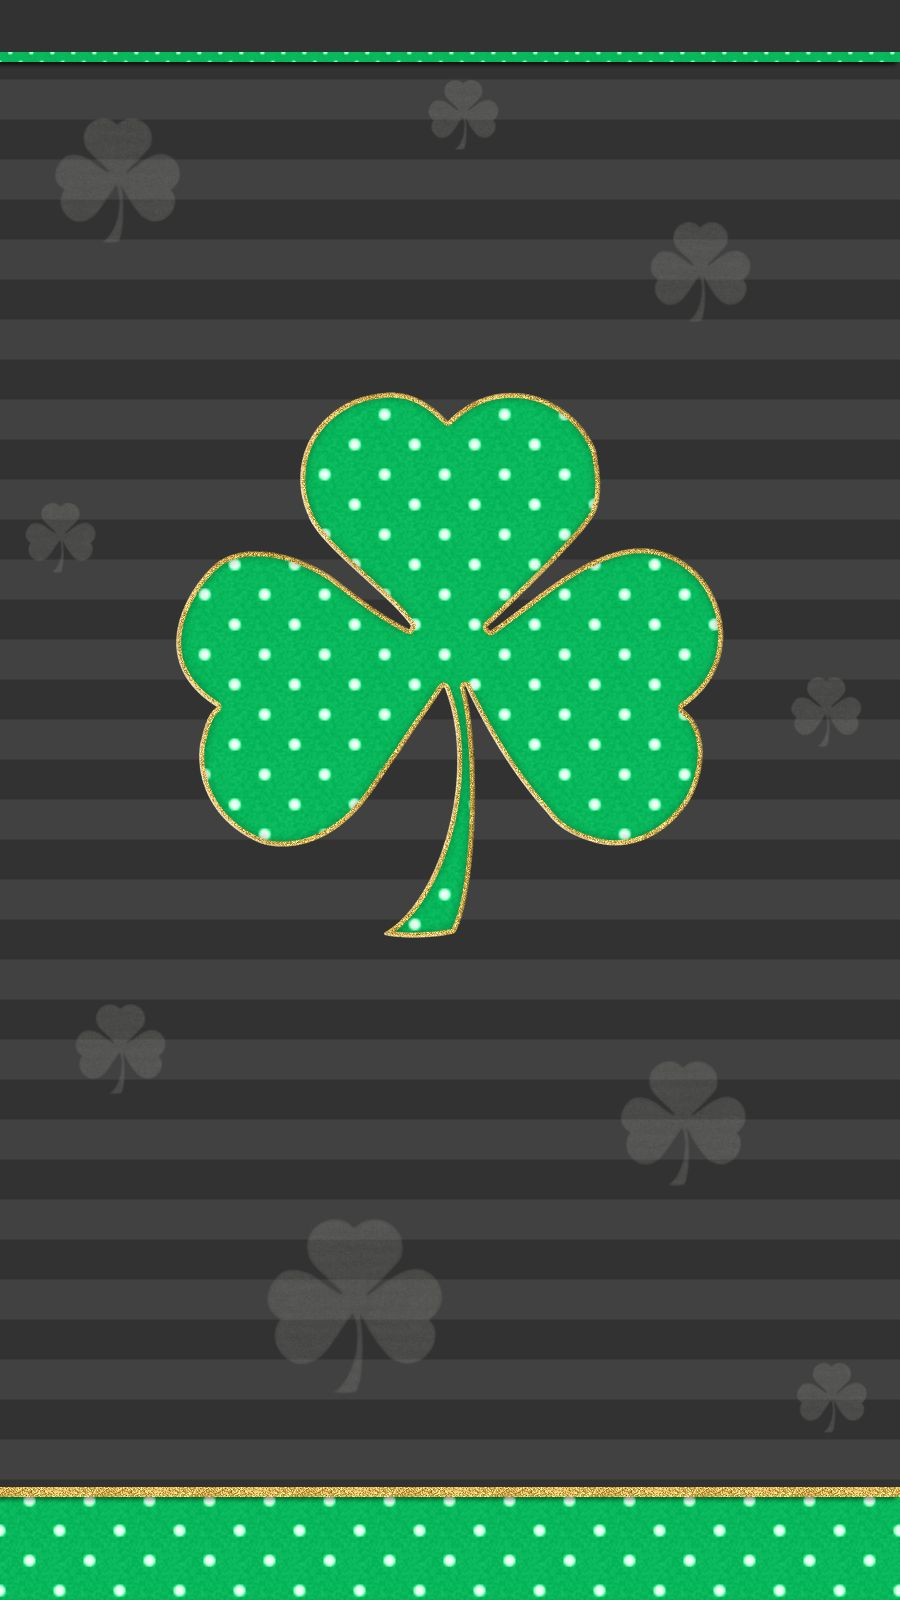 iPhone Wall St.Patrick's Day tjn St patricks day